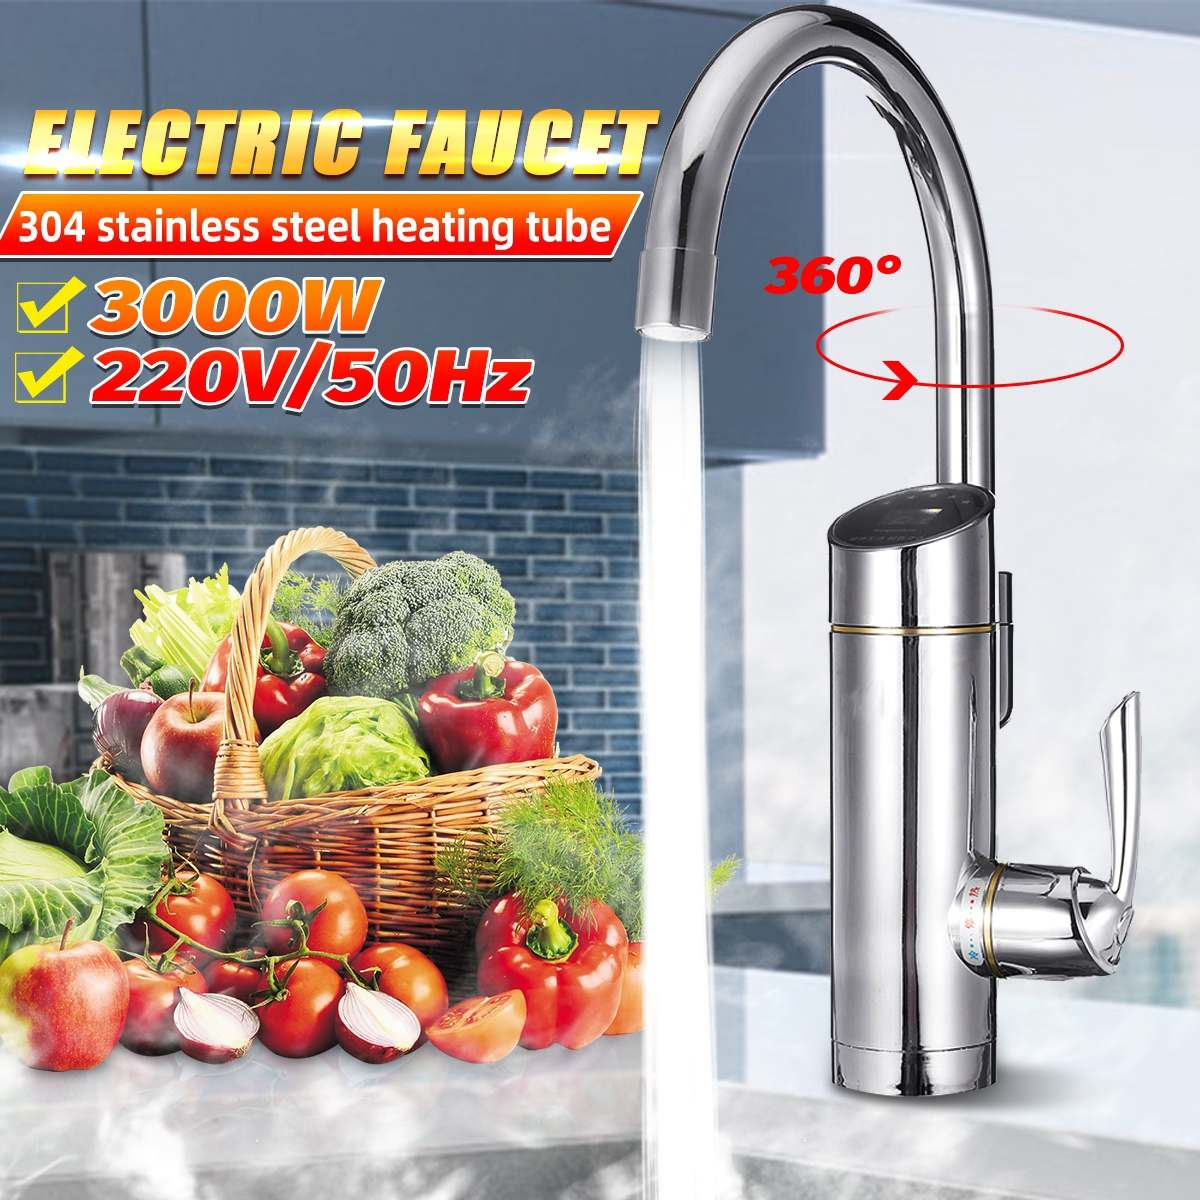 3000W Faucet Water-Heater Electric-Tap 360 Degrees Kitchen Faucet Tankless Instant Hot Water Tap Temperature Display